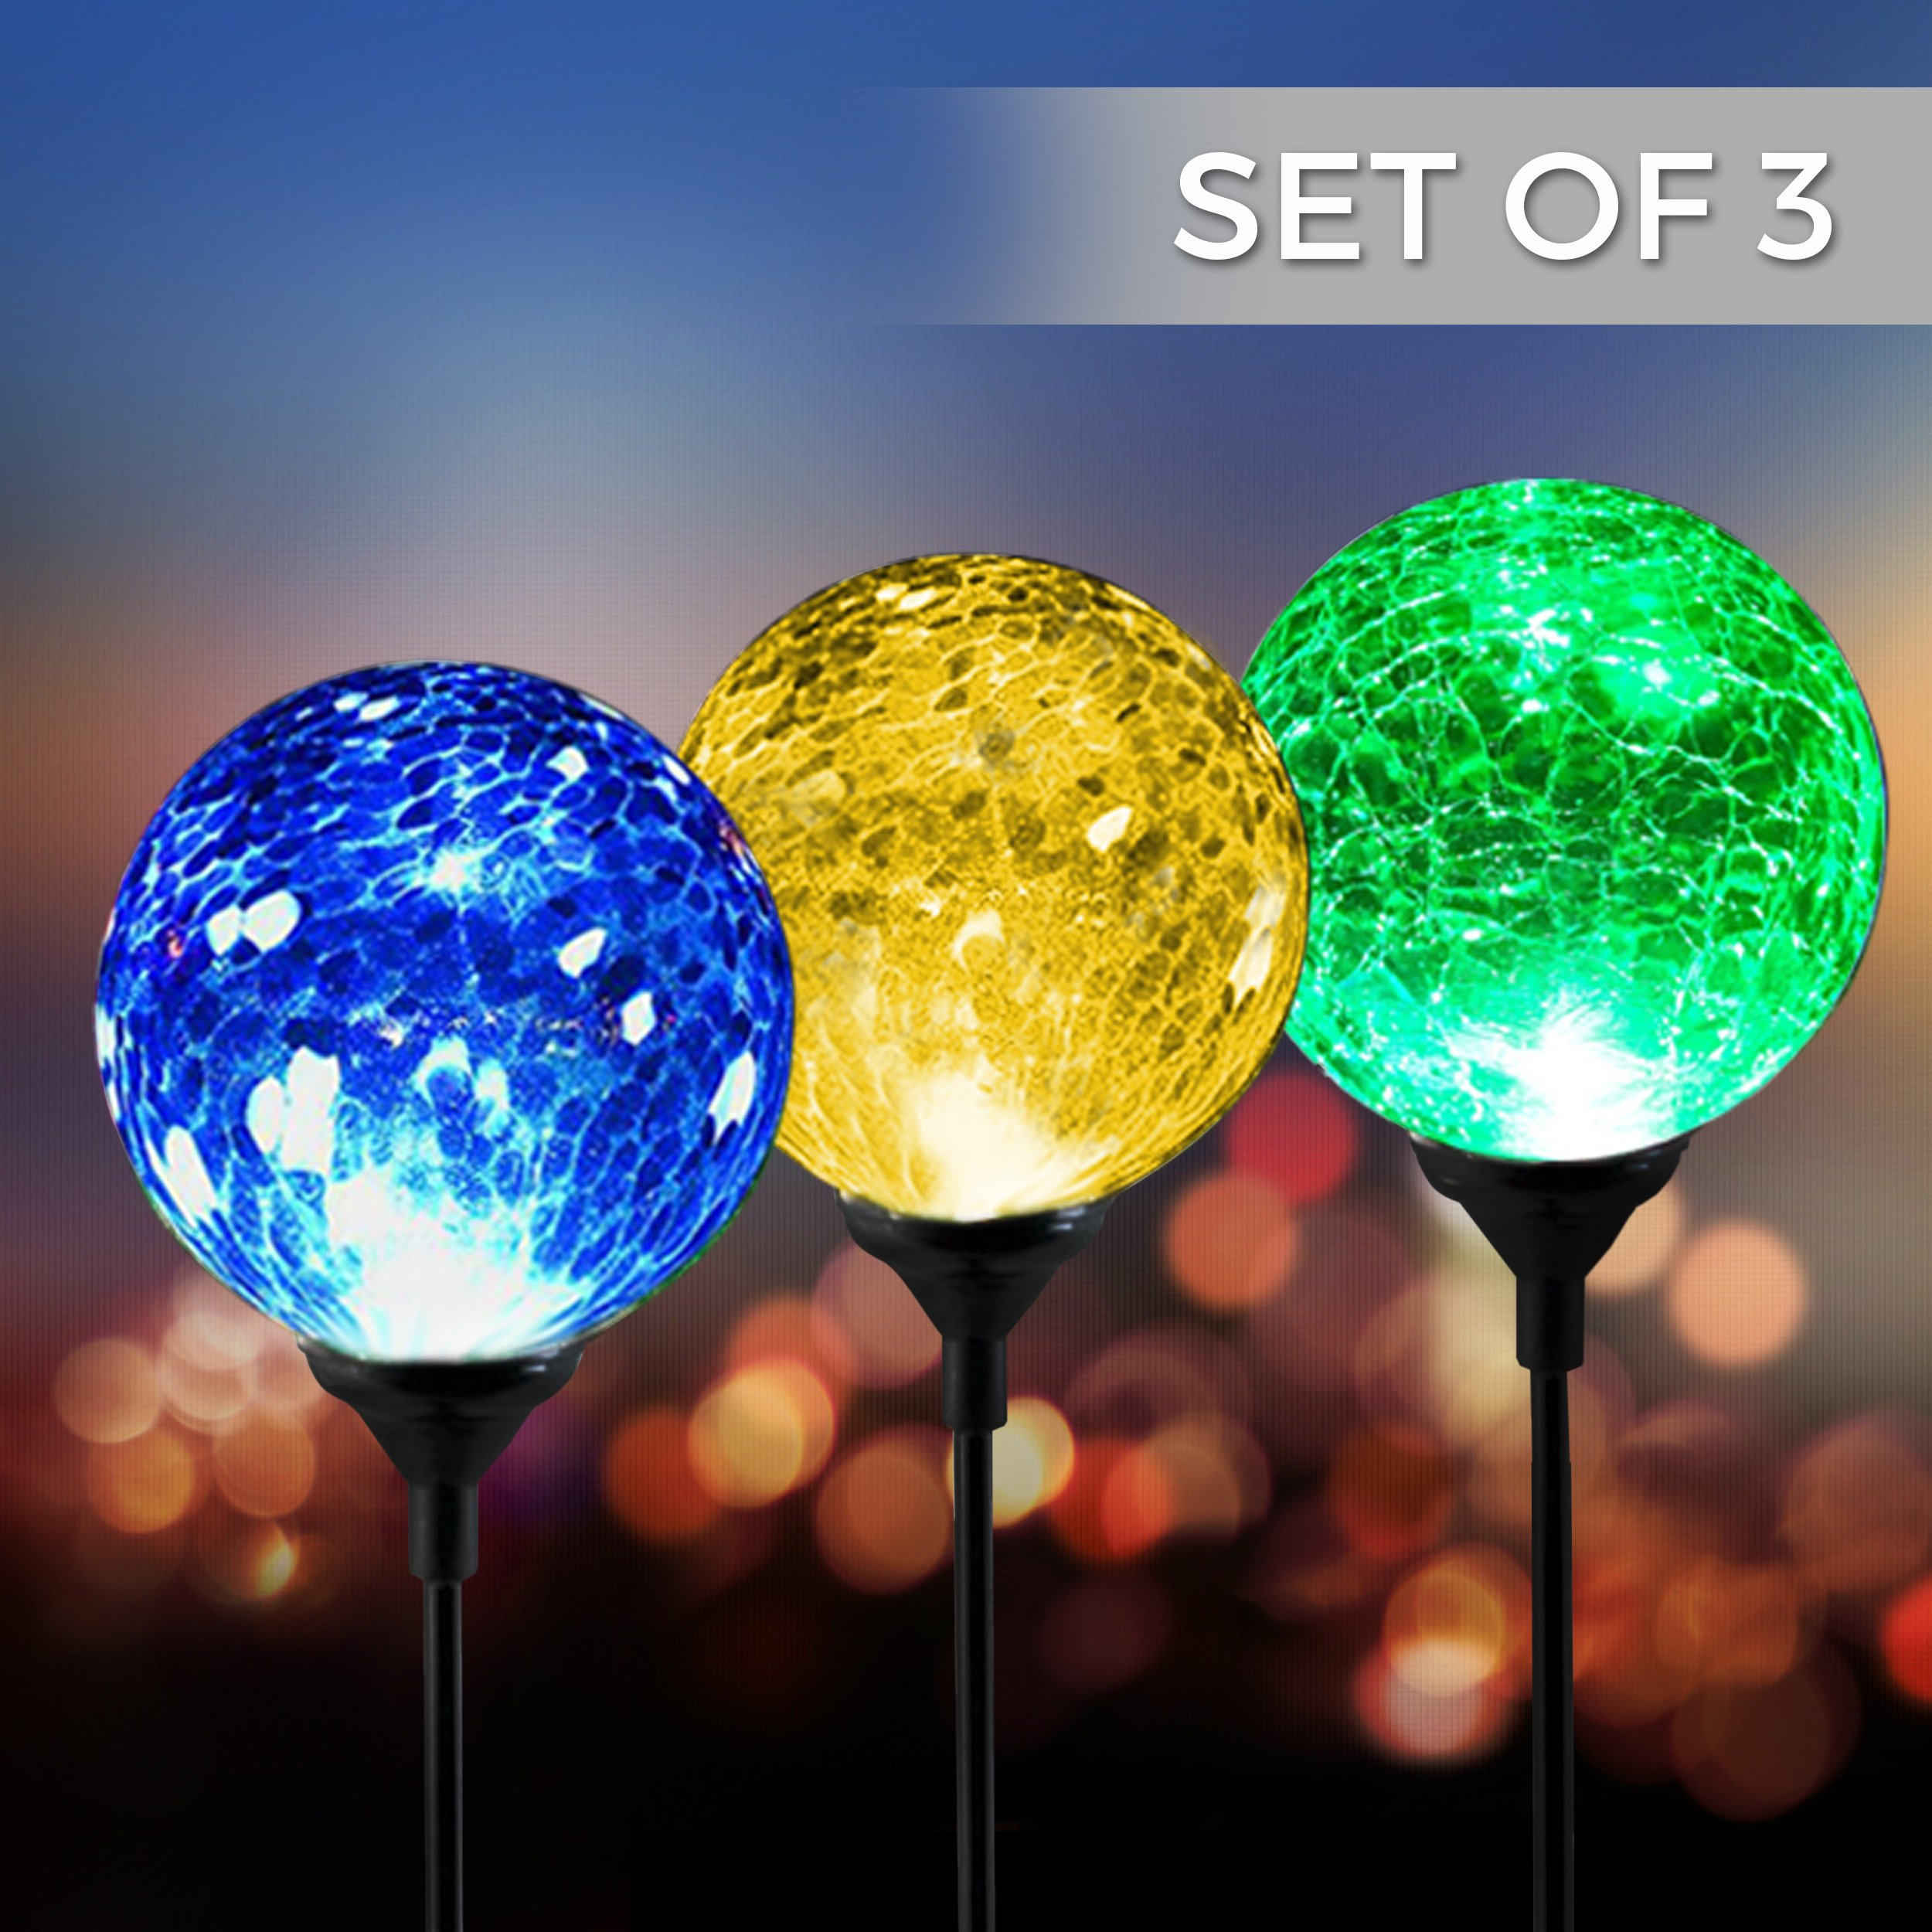 outdoor led accent lighting bass boat deck solar powered crackle glass ball color changing stake lights set of 3